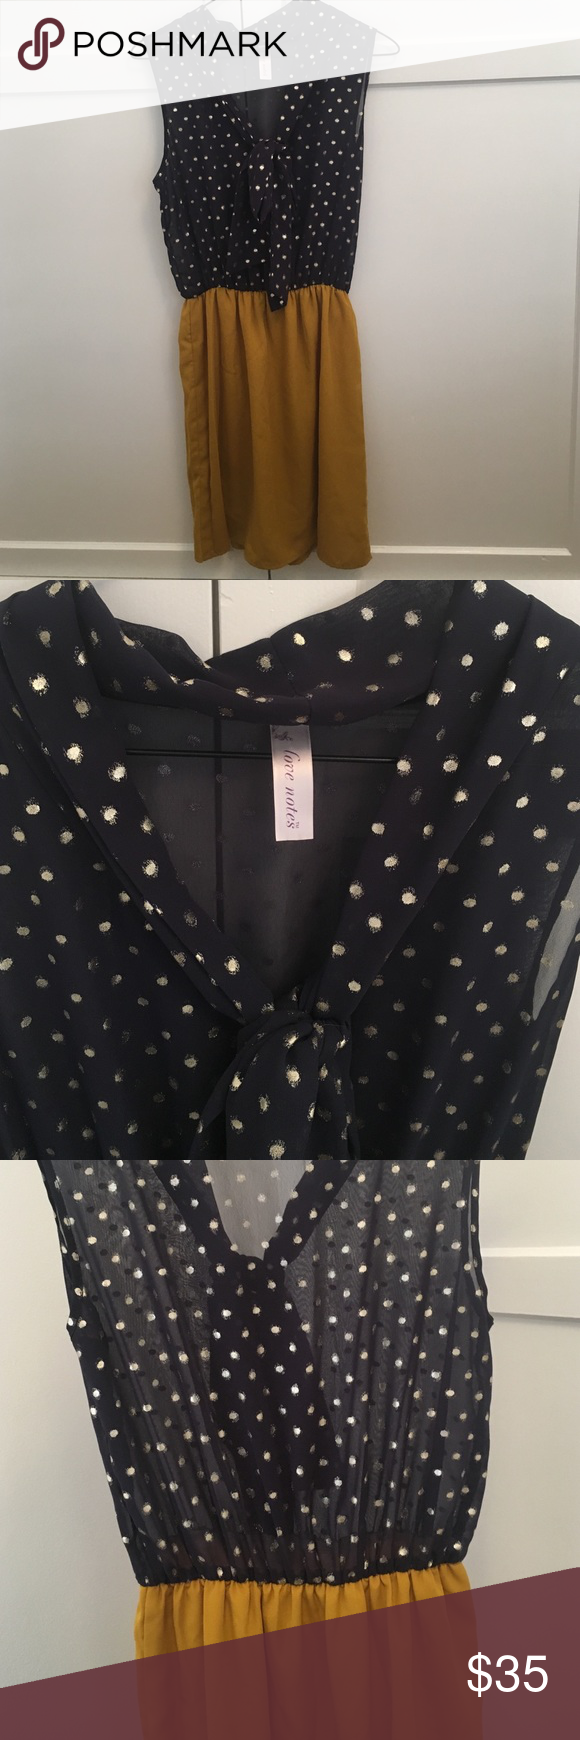 Bow top fall dress Blue and burnt yellow dress - top is sheer with gold polka dots as a cute tie  at the neck, skirt is lined. Worn two or three times. Super cute paired with a belt. Francesca's Collections Dresses